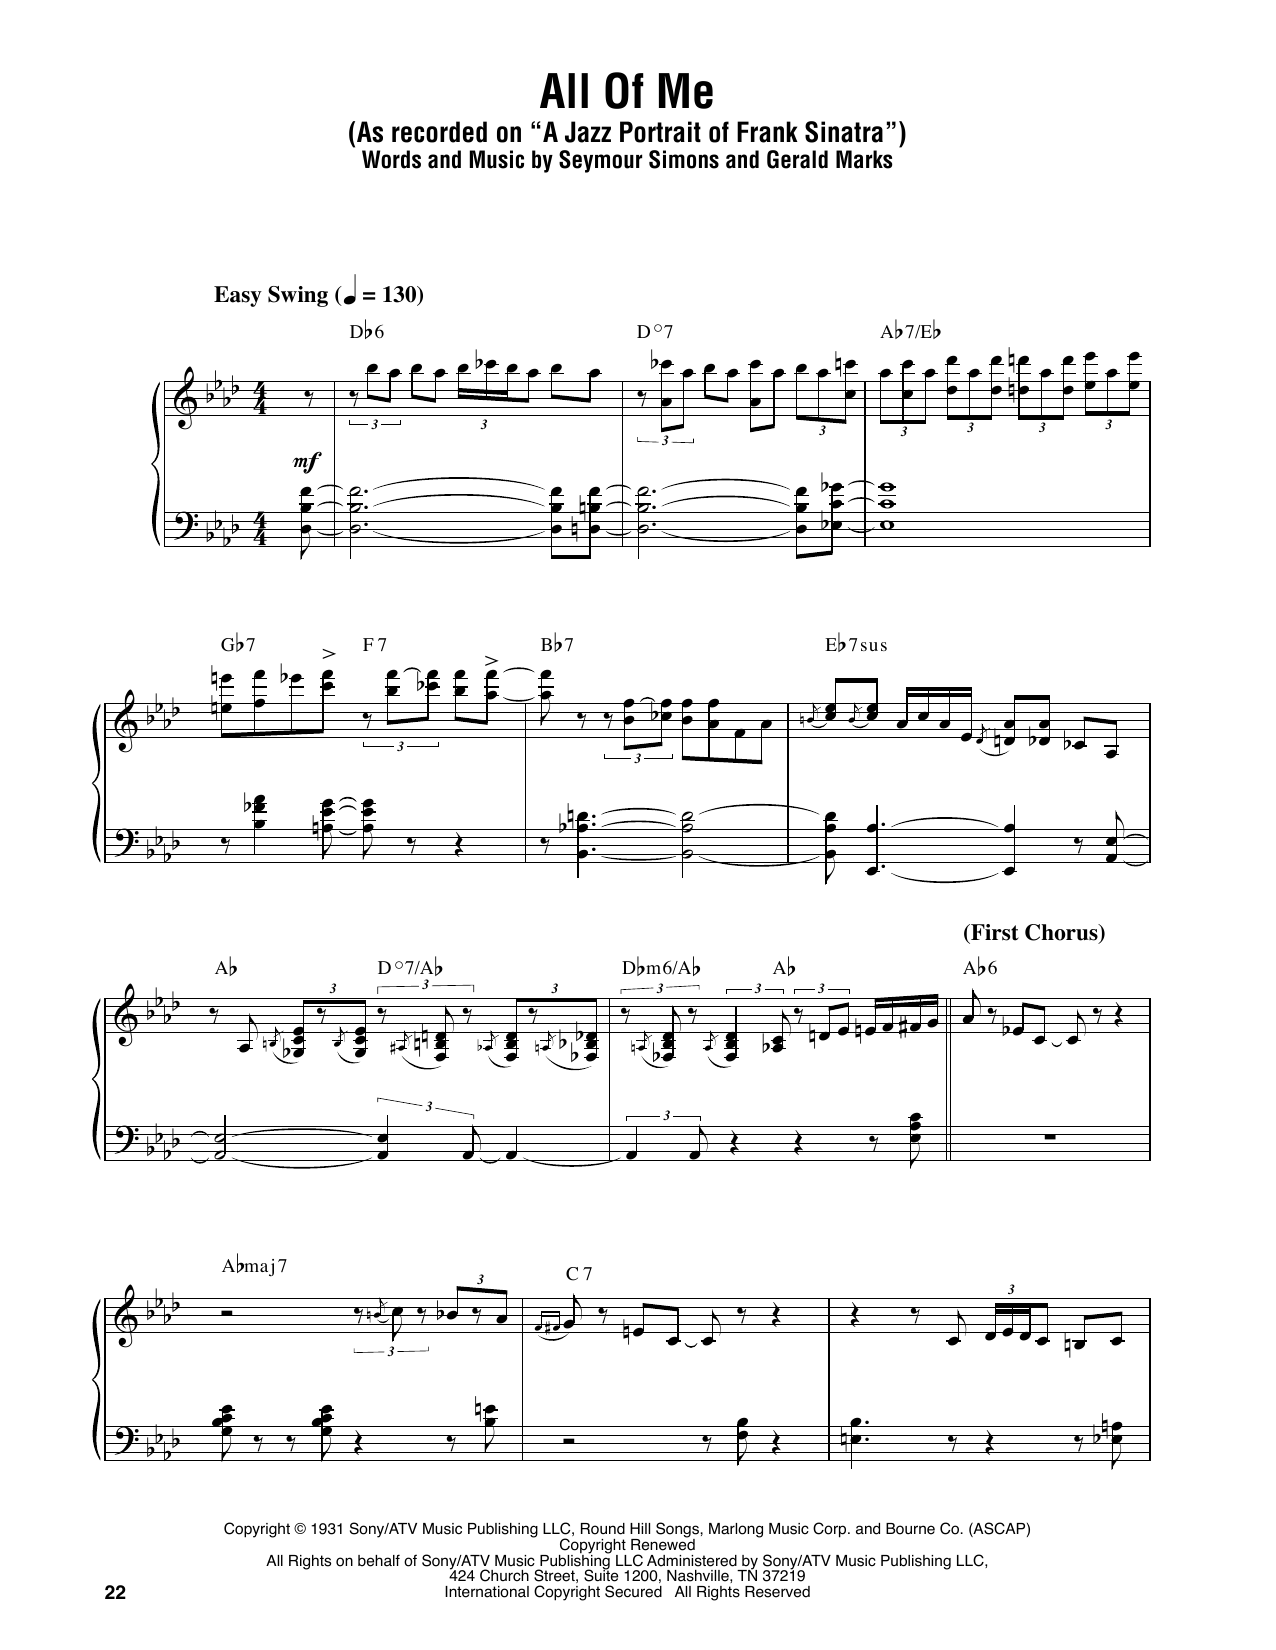 All of me sheet music by oscar peterson piano transcription 179995 all of me sheet music hexwebz Gallery